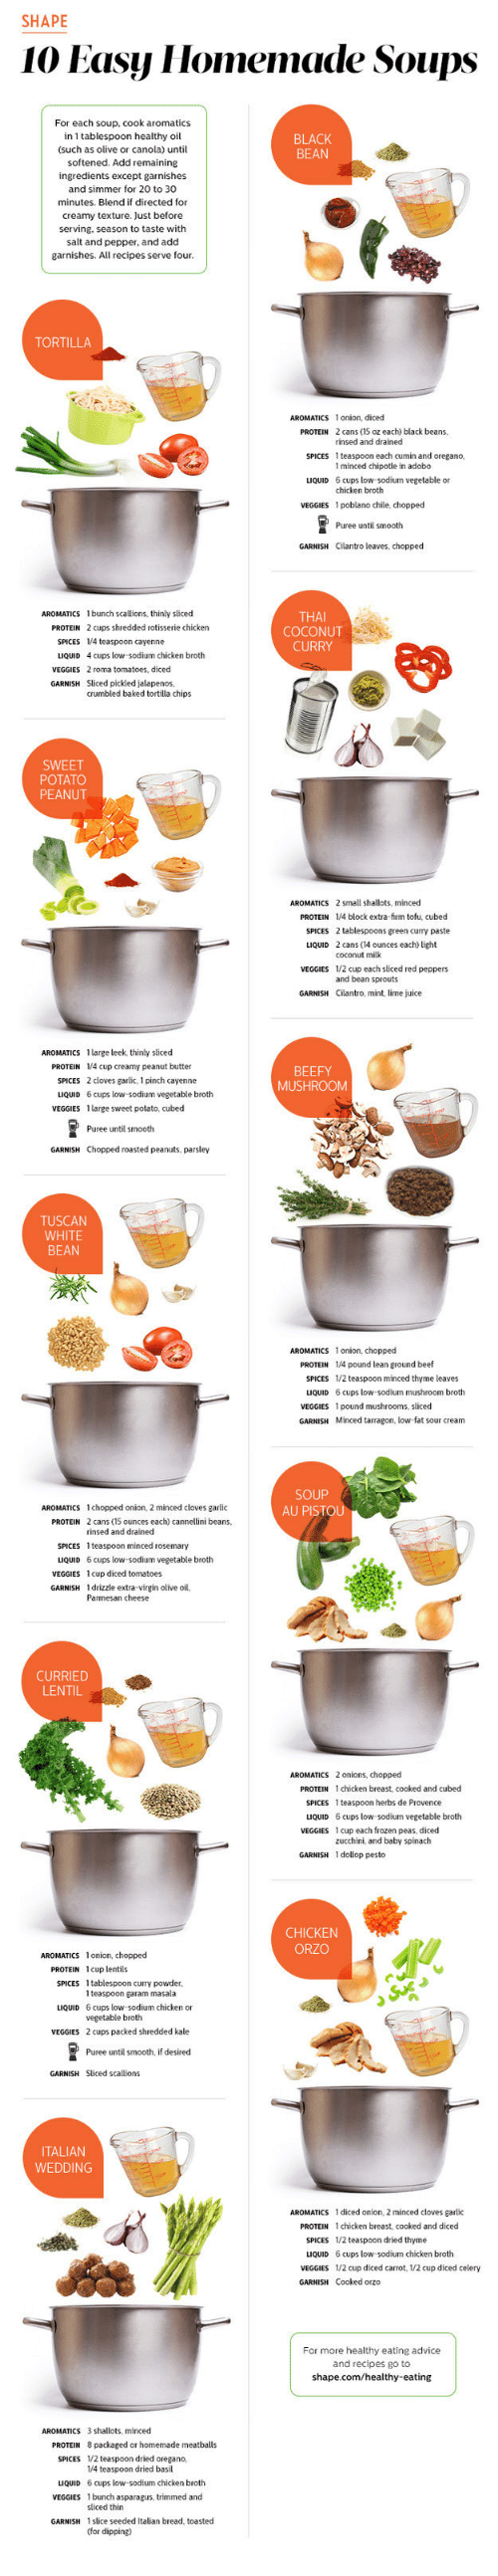 Advice, Baked, and Beef: SHAPE  10 Easy IIomemade Soups  For each soup, cook aromatics  in 1 tablespoon healthy oil  such as olive or canola) until  softened. Add remaining  ingredients except garnishes  and simmer for 20 to 30  minutes. Blend if directed for  creamy texture Just before  serving, season to taste with  salt and pepper, and add  garnishes. All recipes serve four  BLACK  BEAN  TORTILLA  AROHATICS 1onion diced  PROTEIN 2 cans (15 et eachi black beens  rinsed and drained  1 minced chipode in adebo  chicken broth  SPICES 1 teaspoon each oumin and oregano,  LQUID 6oups low sodium vegelable or  VEGGIES 1poblano chile, chopeed  Puree untíi smooth  GARNISH  Cilantro leaves, chopped  AROMATİCS  bunch scallions thniriced  THAI  PROTEIN 2 cups shredded sotisserie chicken  14 teaspoon cayenne  SPICES  LIQUID 4 cups low sodium chicken broth  CURRY  VEGGIES 2 roma somatoes, diced  GARNISH Sliced pickled jalapesos  crumbled baked tortilla chips  POTATO  AROMATICS 2 small shallets, minced  PROREIN 14 block estra frm tofu, cubed  SPICES 2 tablespoons green curry paste  LIQID 2 cans (14 ounces each)Ight  VEGGES  12 cup each siced ted peppers  GARNISH Cilantro, mint, lime juice  ARONATICS arge leek thinly sliced  PROTEIN  V4 cup creamy peanut butter  BEEFY6 9  SPMCES 2 cloves garlik1 pinch cayenne  LIQUID 6 cups low -sodium vegetable bioth  VEGGIES 1large sweet potato, cubed  Paree untd smooth  GARNISH Chepped roasted peanuts, parsley  TUSCAN  WHITE  BEAN  縫 HATICS lonn chopped  PROTEIN 14 pound lean geound beef  SMCES V2 teespoos minced thyme leaves  UQUID 6 oups low-sodium mushroom broth  VEGGIES 1 pound mushrooms, sliced  GARNISH Minced tarragon, low-fat sour cream  SOUP  RONATICS 1chapped onion, 2 minced clowes garlic  PROTEIN 2 cans (15 ounces each) carnellini beans  rinsed and drained  SMCES teaspoon minced rosemary  LIQUID 6 cups low-sodiam vegetable bioth  VEGGIES  lcup diced tomatoers  İdrizde extra virgin ahmae  Panmesan cheese  GARNISH  CURRIED  AROMATICS 2 o